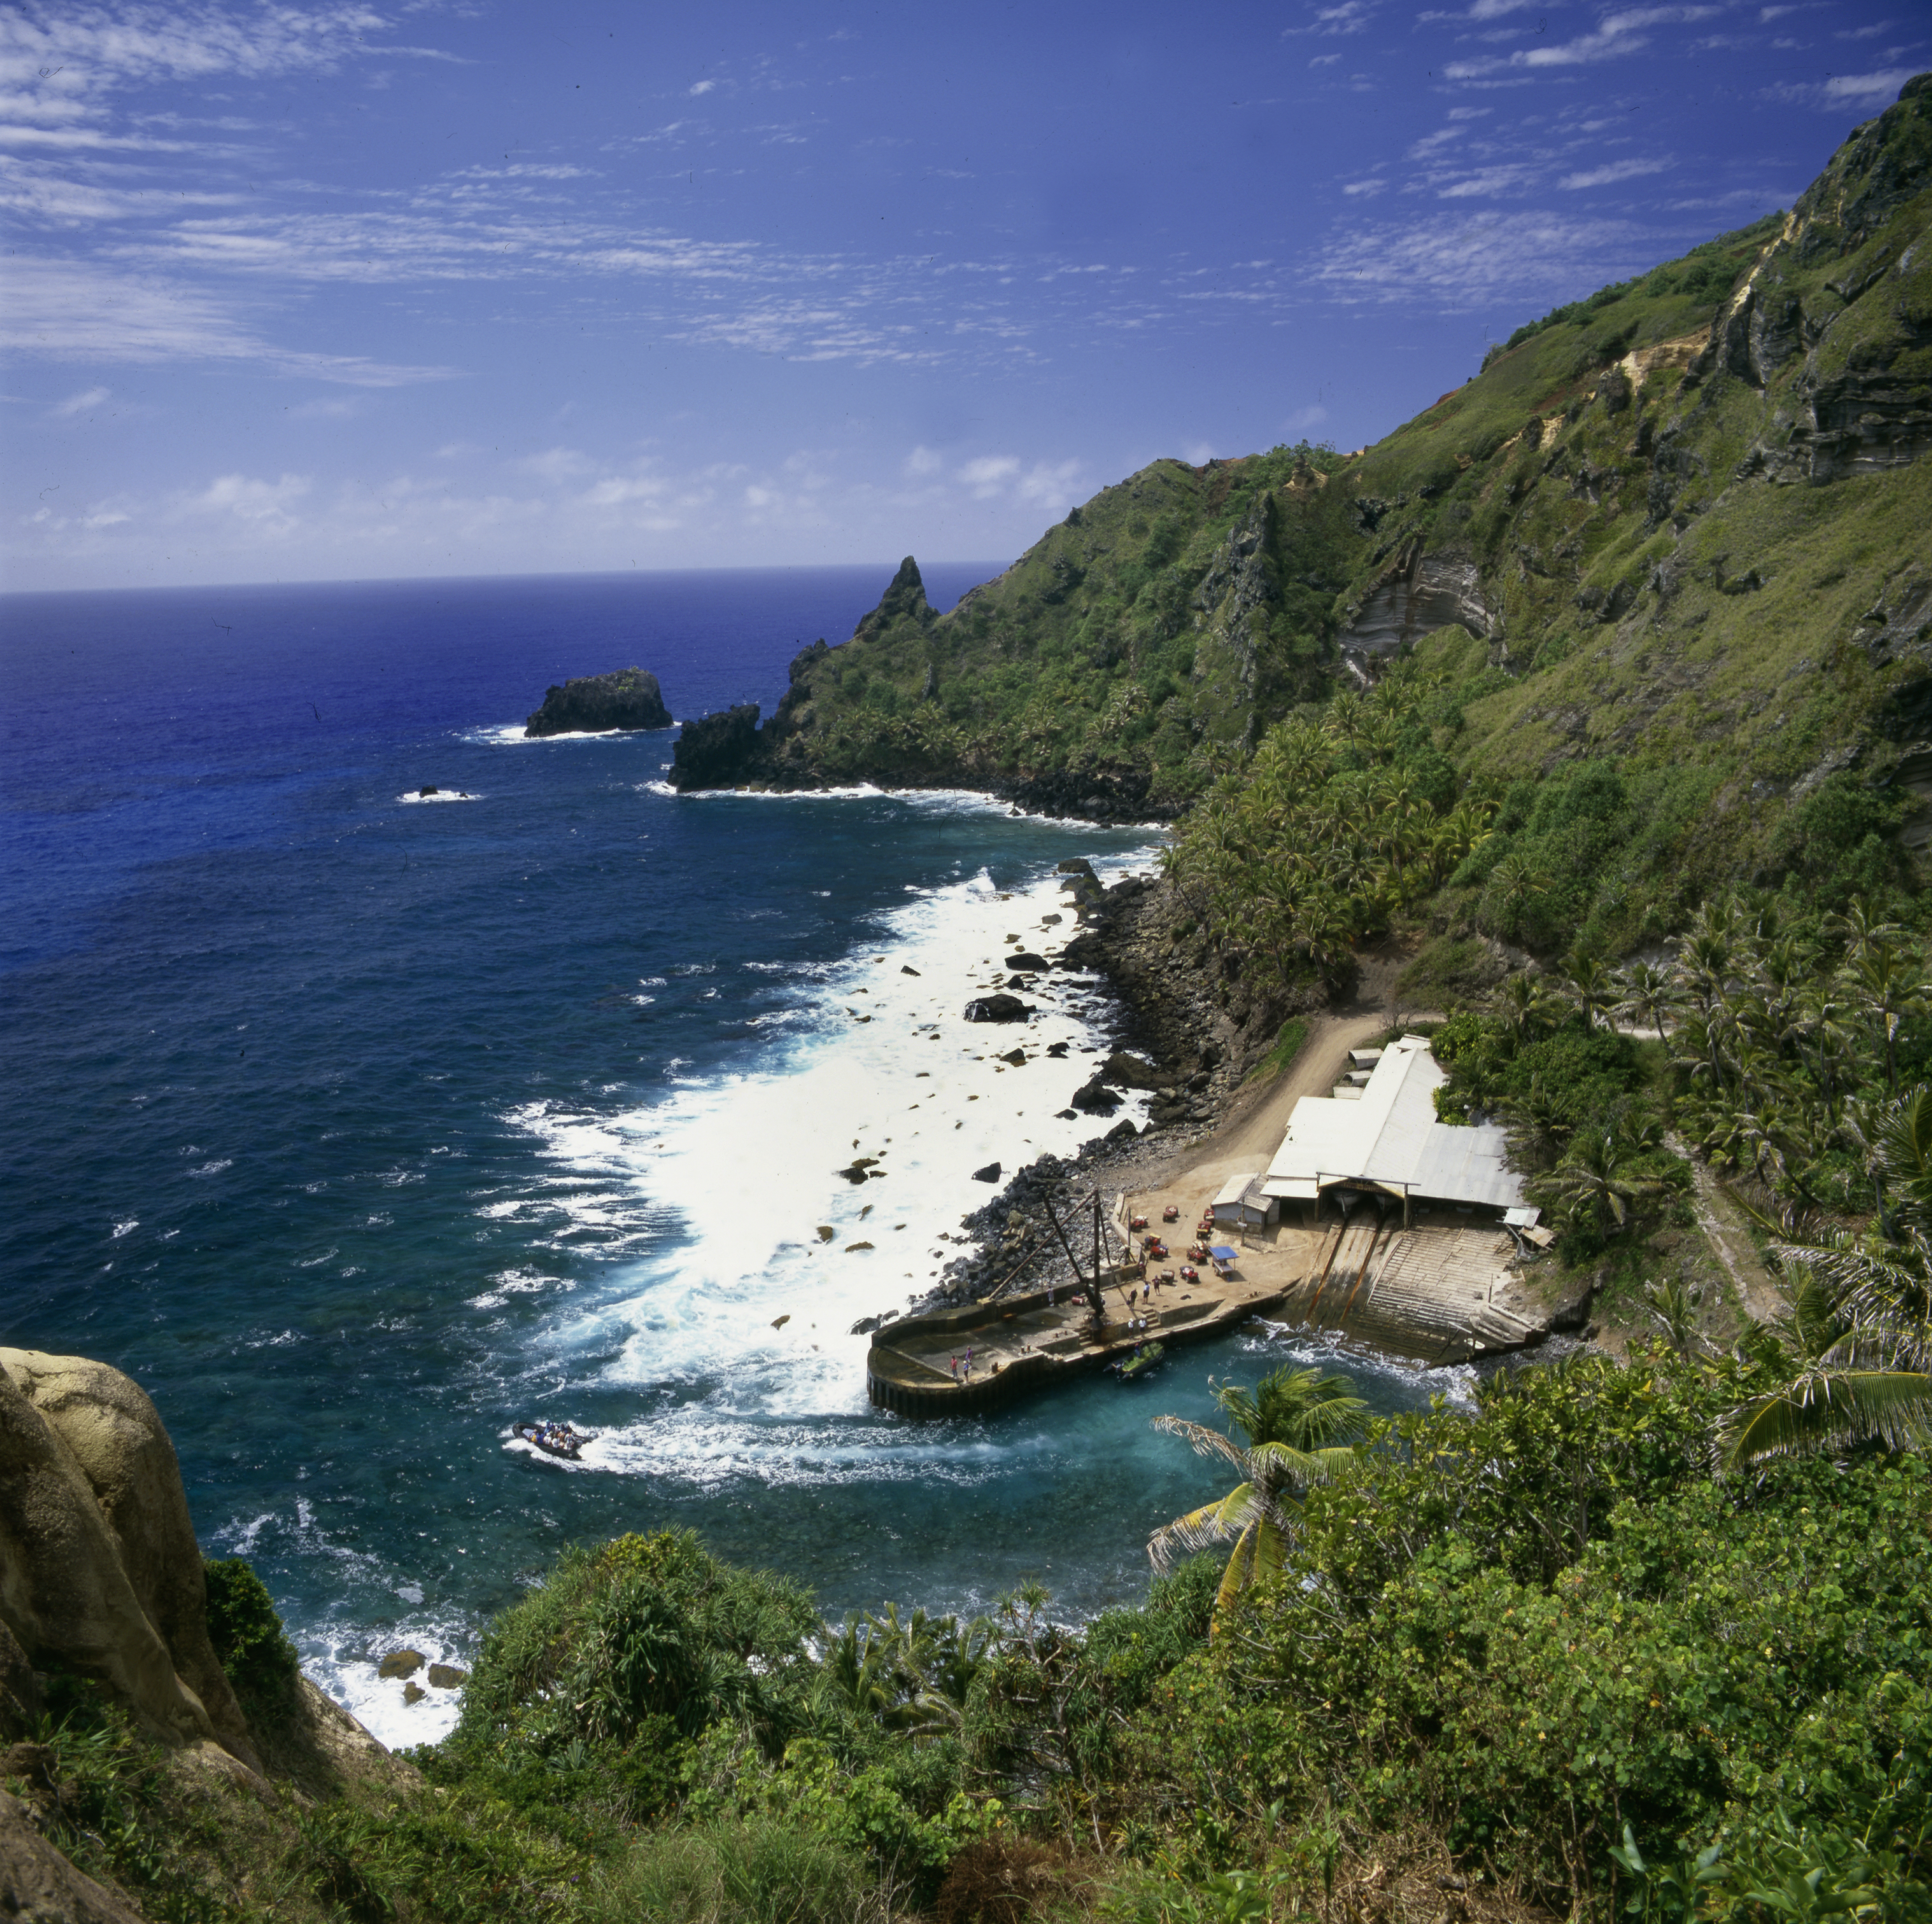 Splendid Isolation on Pitcairn, the World's Most Remote Island